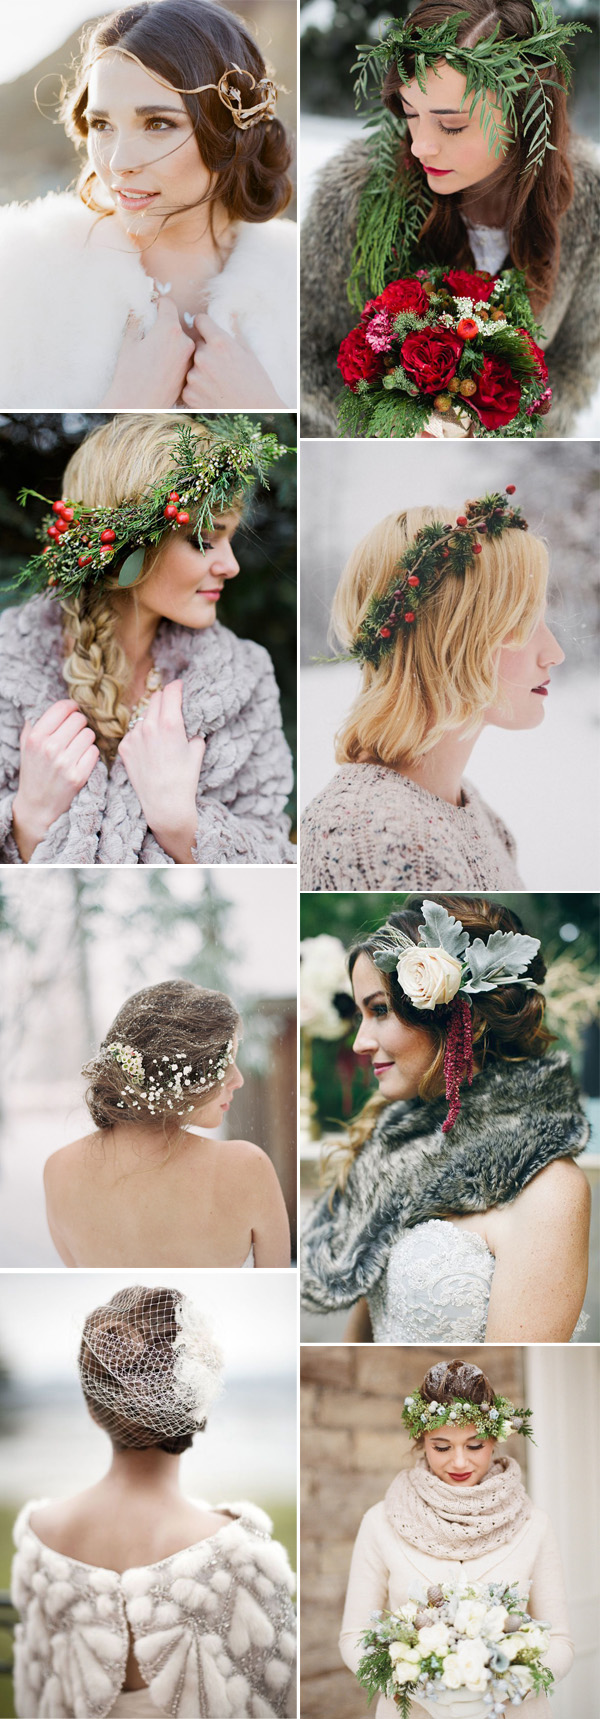 winter brides wearing beautiful headpieces